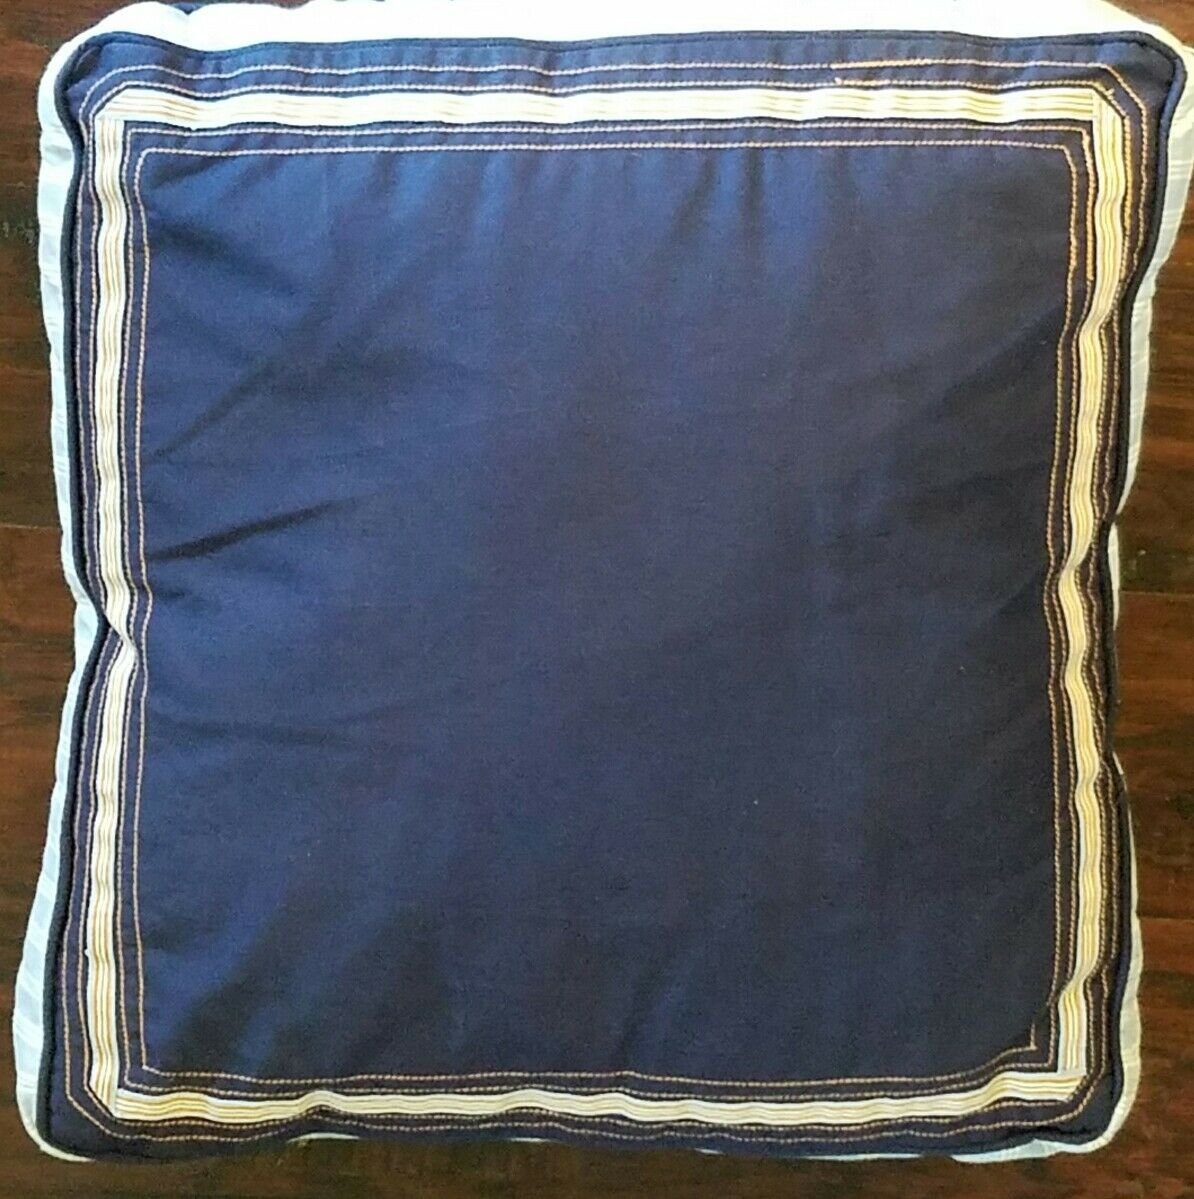 NEW NAUTICA MALIBU NAVY blueE orange SQUARE  ACCENT  PILLOW